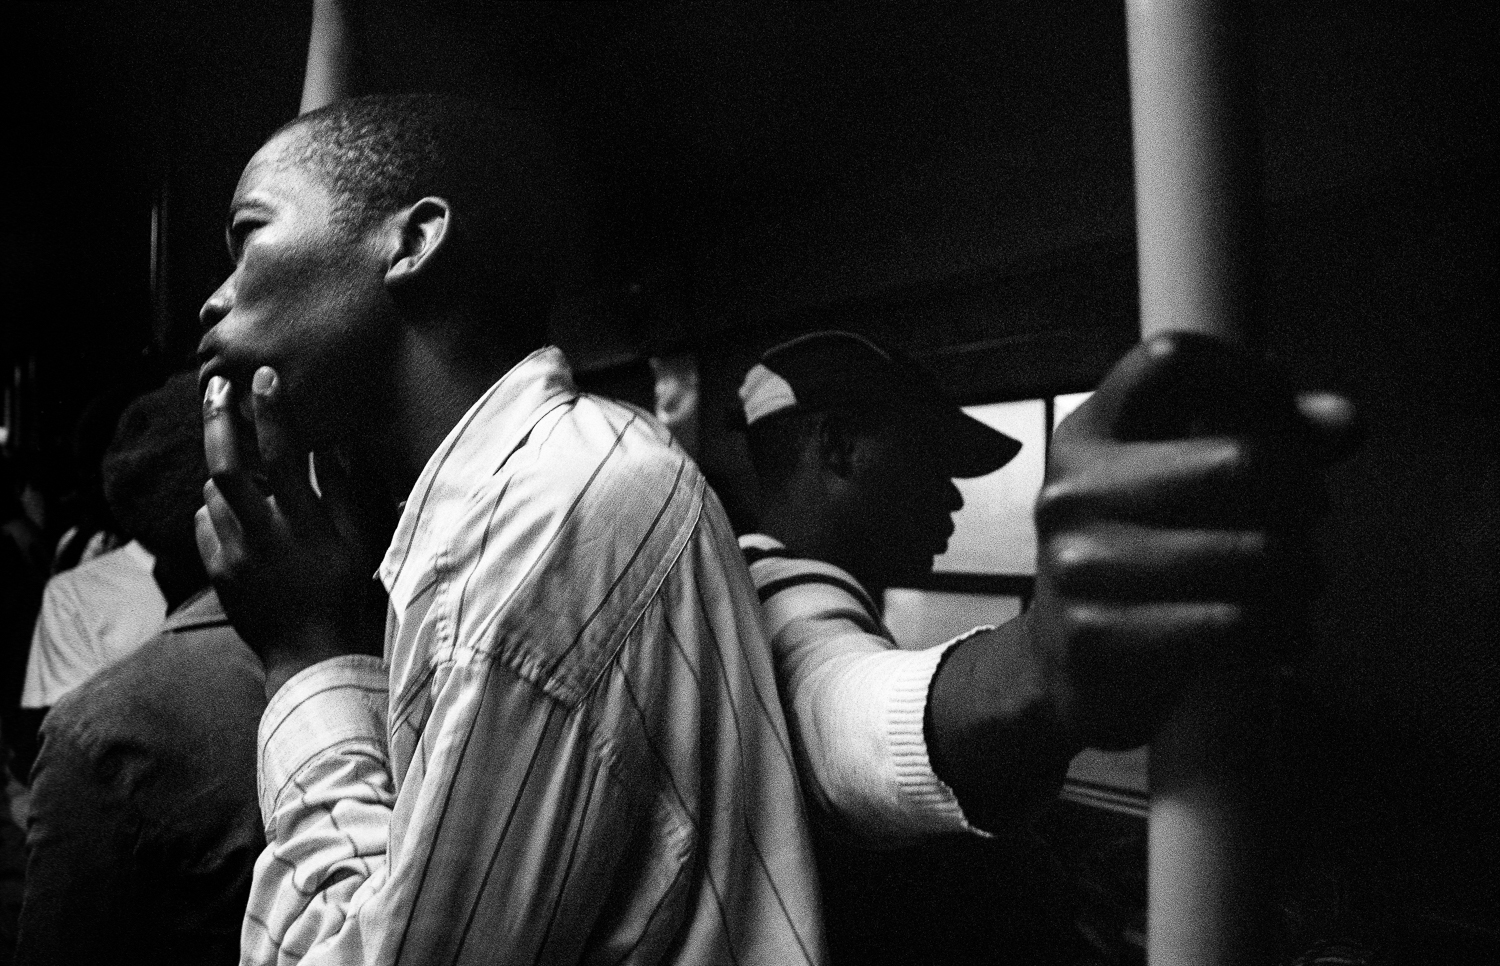 Workers on the night train to Khayelitsha, Cape Town, 2010.